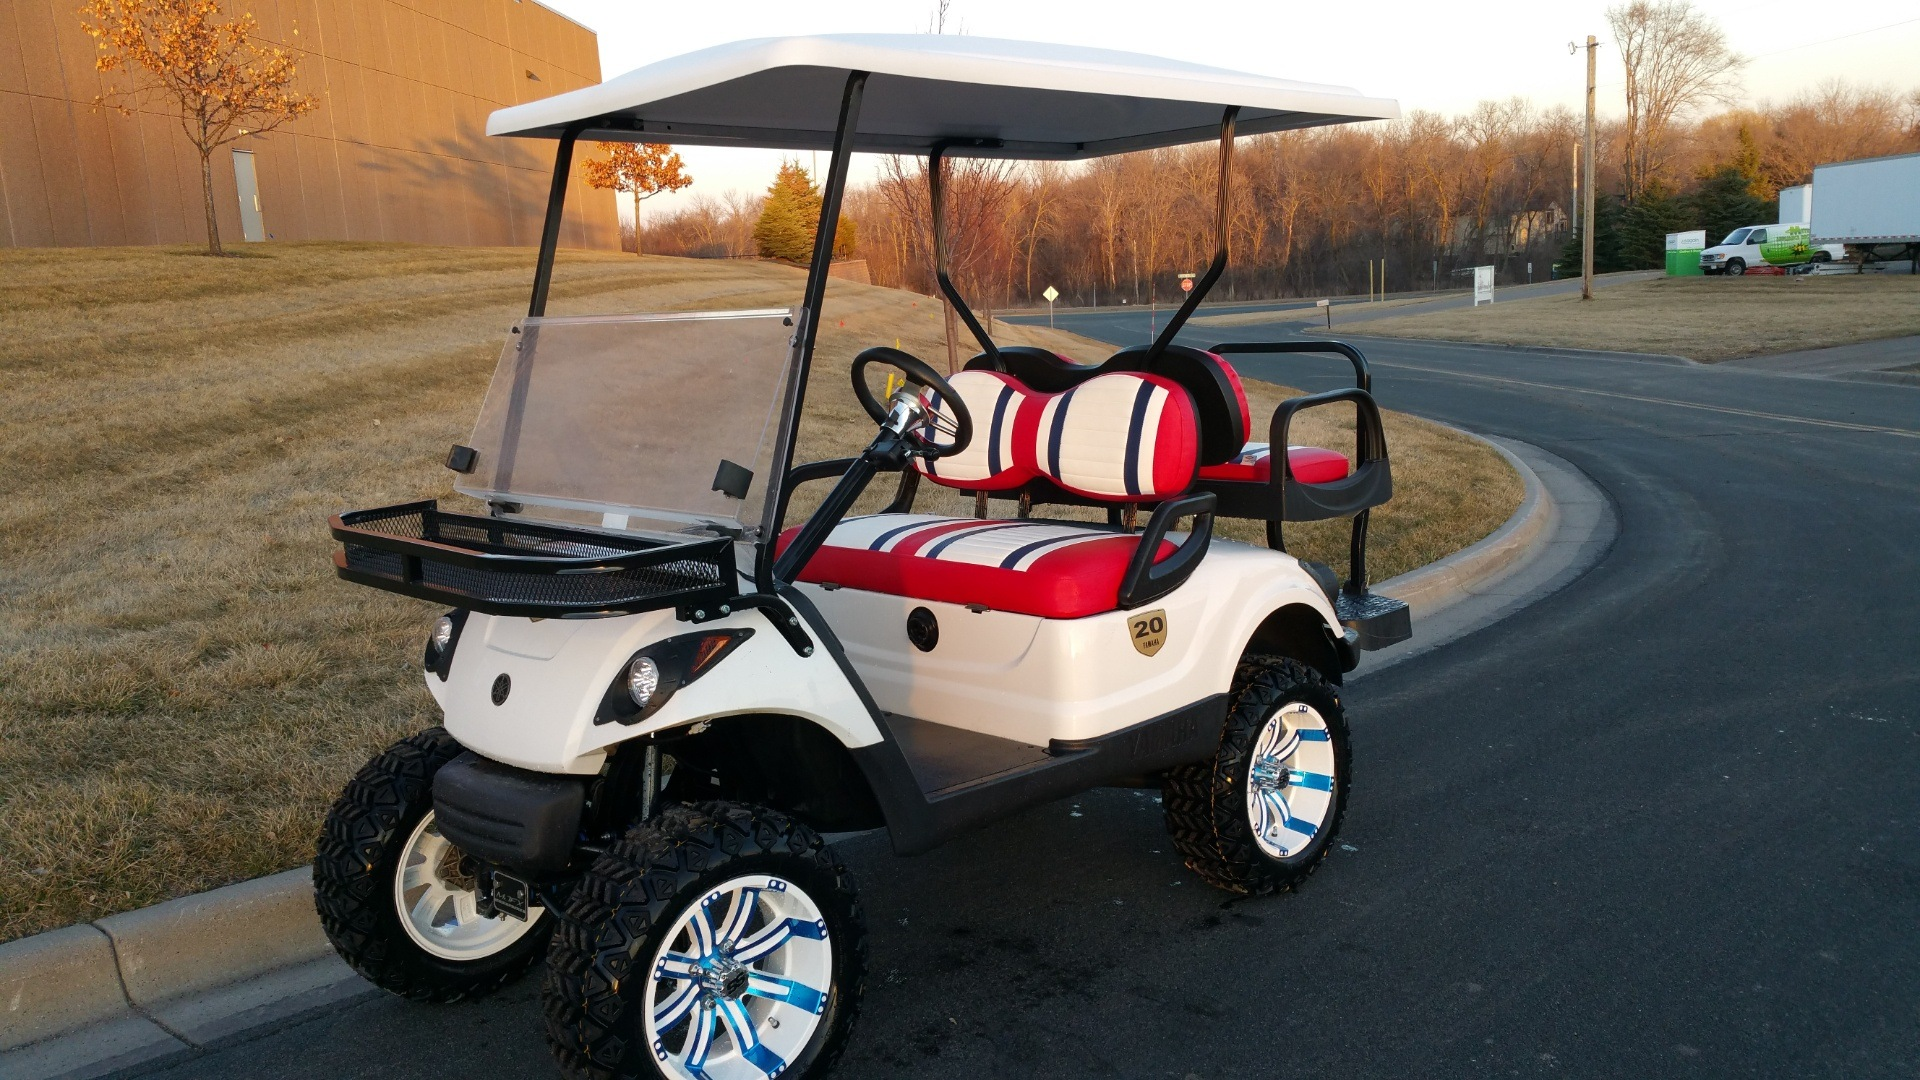 2011 yamaha drive golf carts otsego minnesota bto005959 for Yamaha dealers minnesota